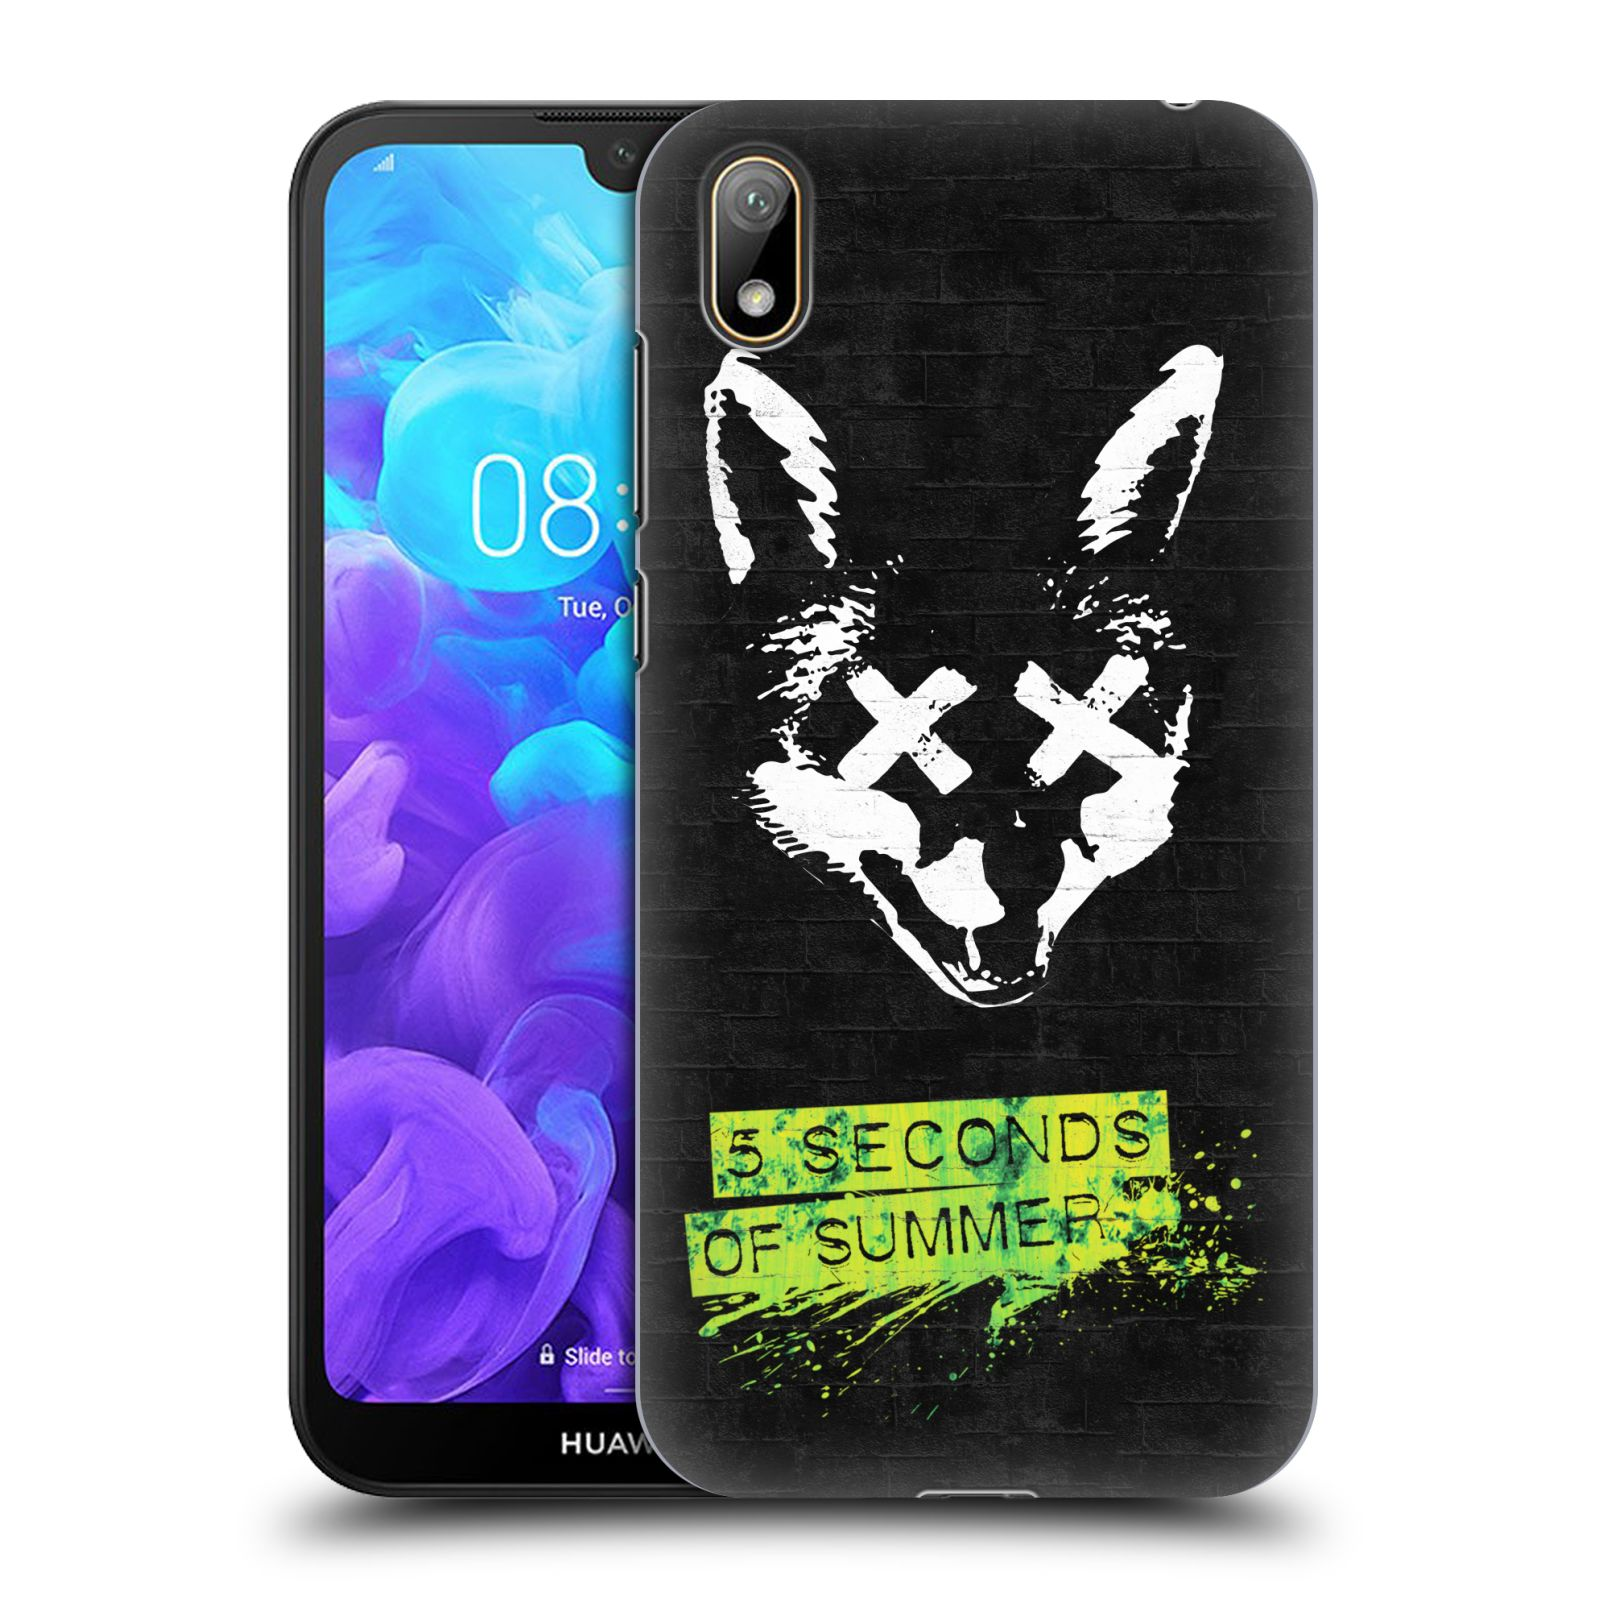 Plastové pouzdro na mobil Honor 8S - Head Case - 5 Seconds of Summer - Fox